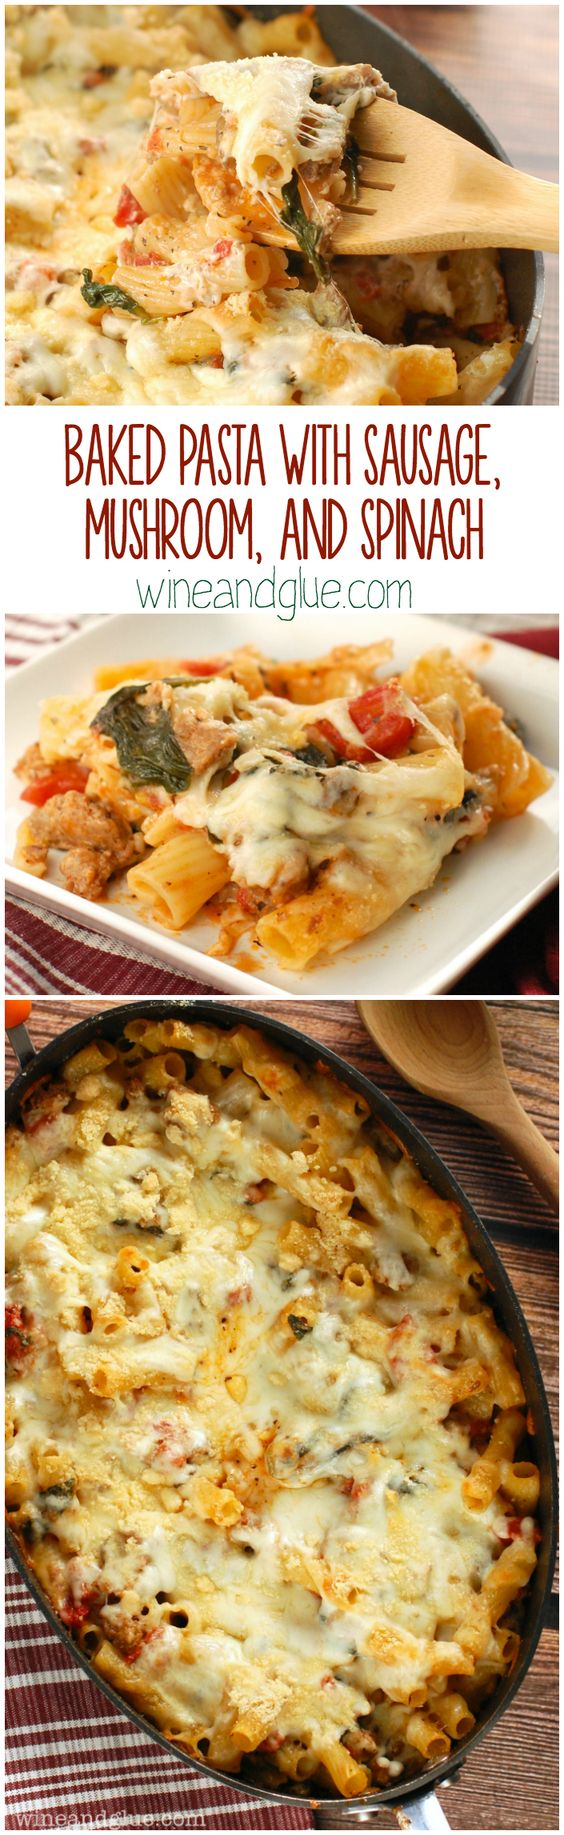 Pasta with sausage, Sausages and Spinach on Pinterest